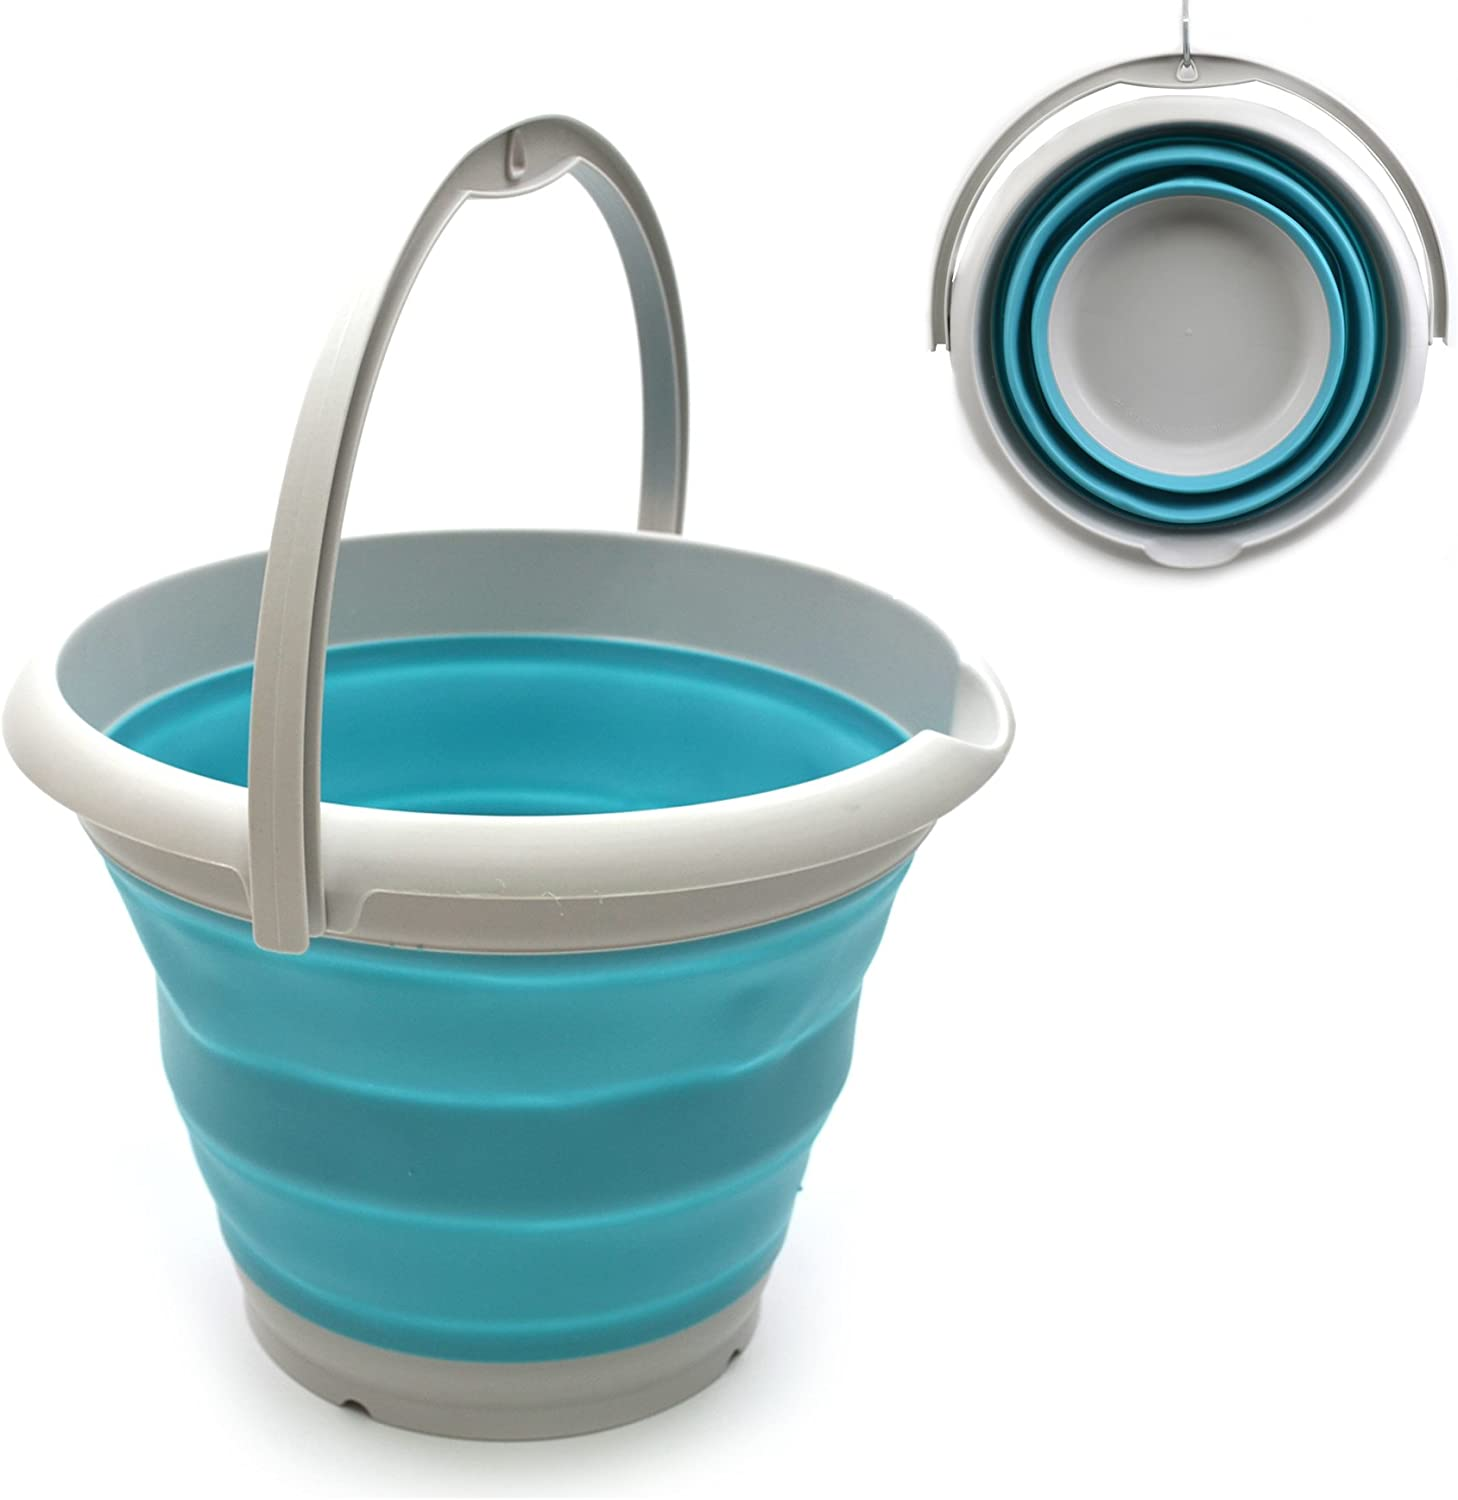 Portable Fishing Water Pail Foldable Square Tub SAMMART 5L Sqare Collapsible Plastic Bucket Space Saving Outdoor Waterpot Hellblau